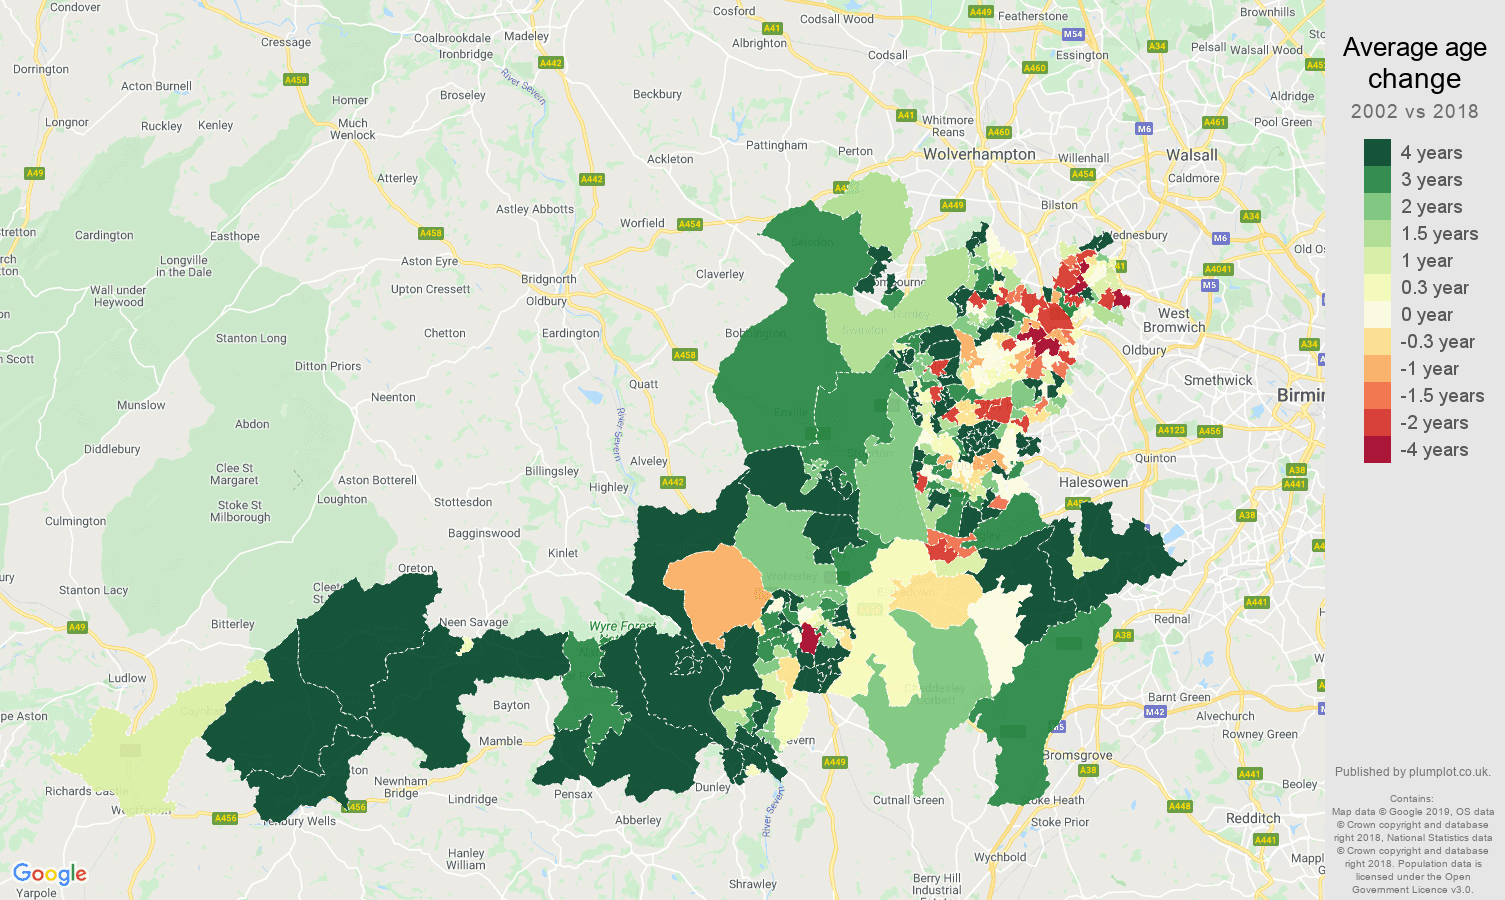 Dudley average age change map